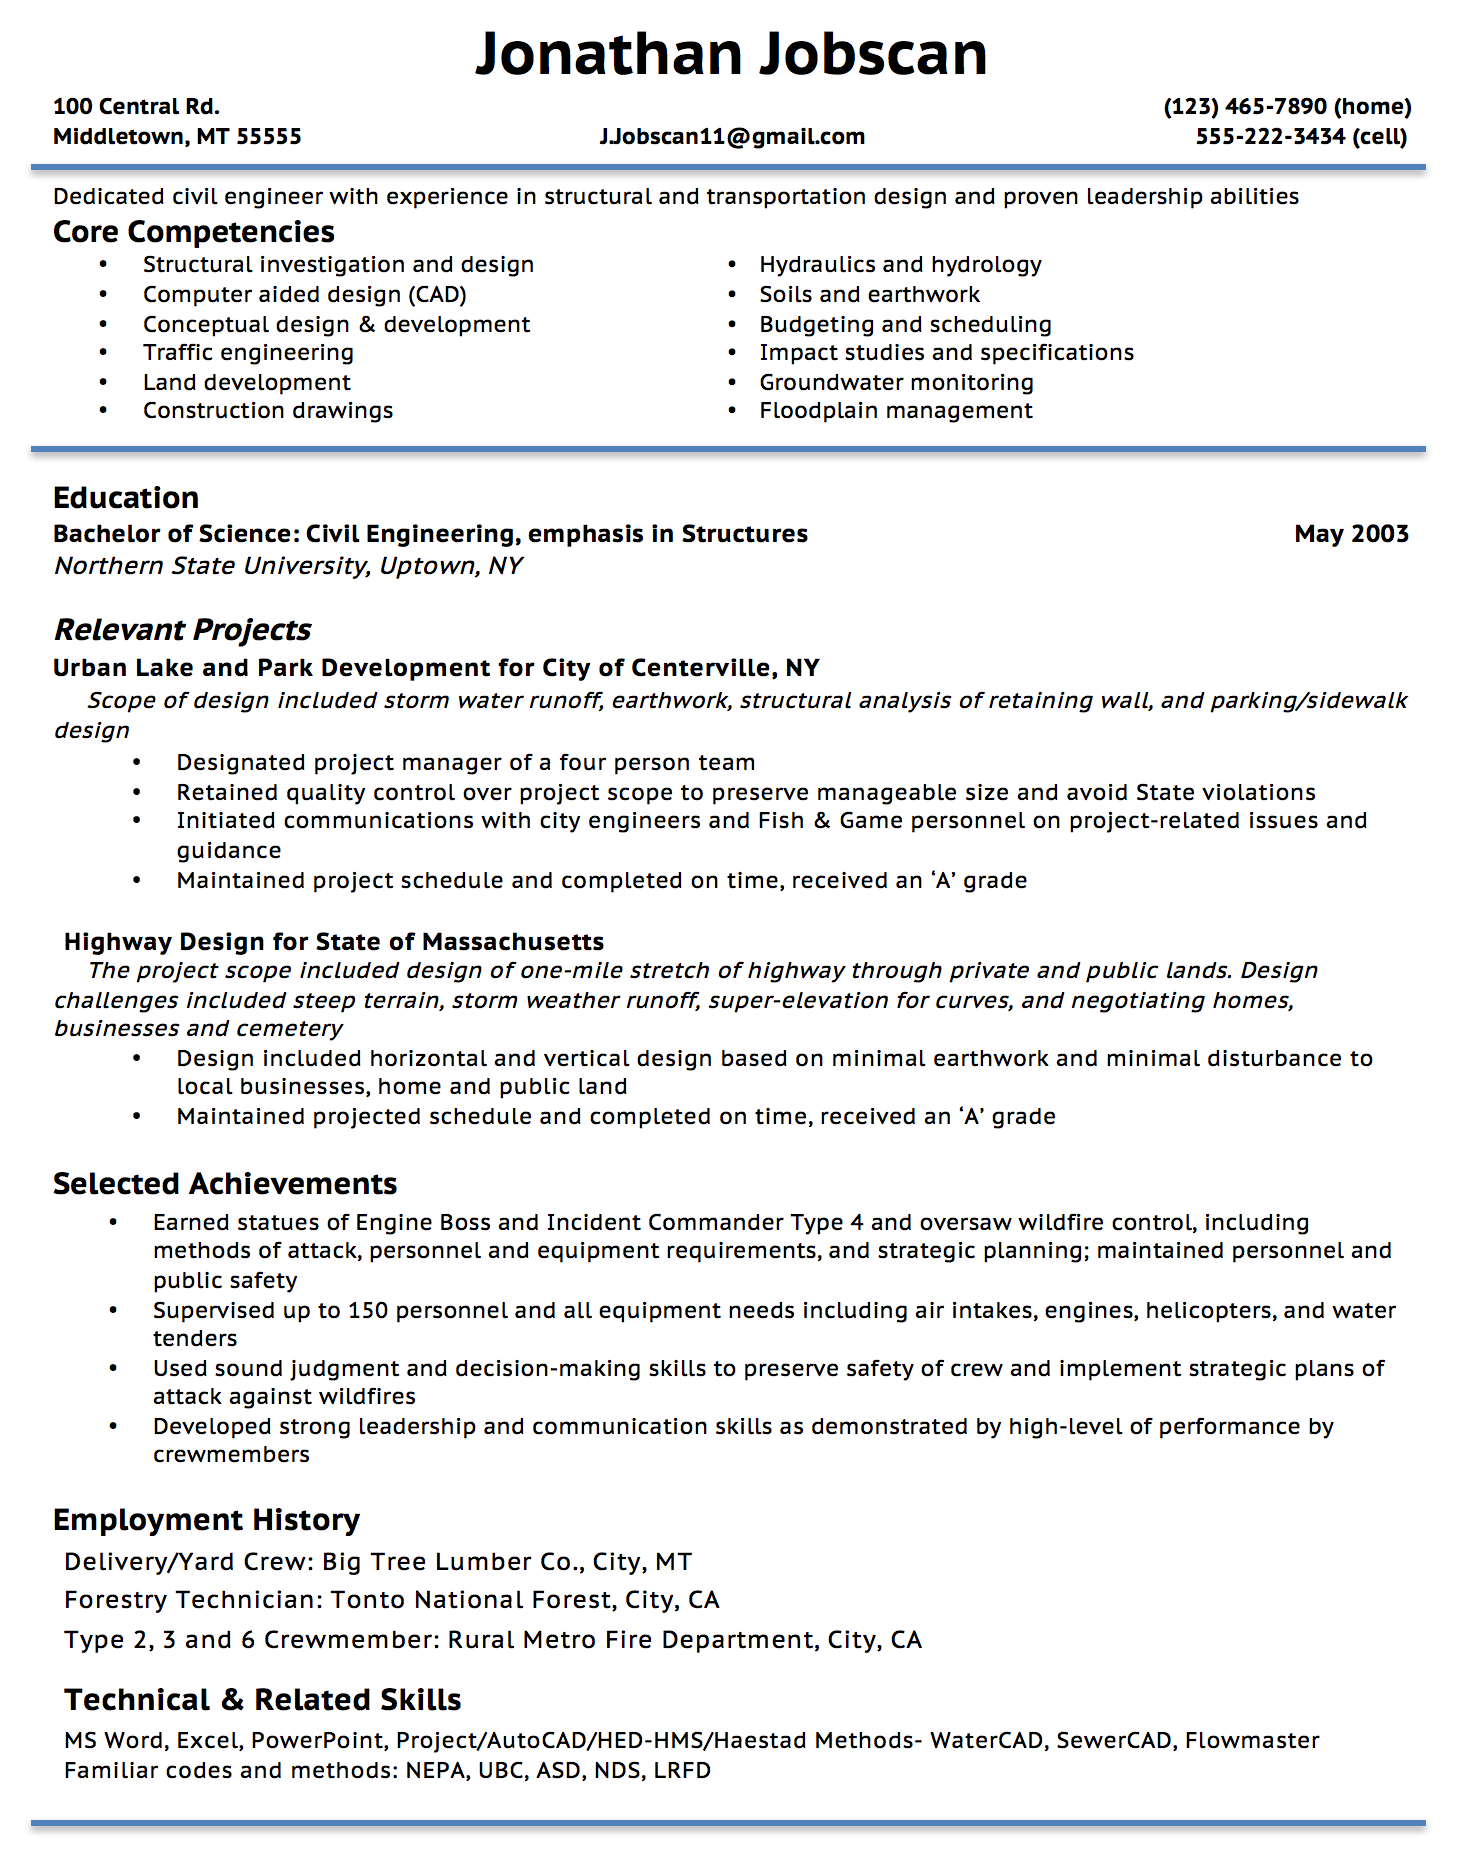 Opposenewapstandardsus  Outstanding Resume Writing Guide  Jobscan With Glamorous Example Of A Functional Resume Format With Awesome What Should A Resume Contain Also Business Development Resume Examples In Addition Insurance Customer Service Resume And Administrative Officer Resume As Well As Estate Manager Resume Additionally Resume Or Curriculum Vitae From Jobscanco With Opposenewapstandardsus  Glamorous Resume Writing Guide  Jobscan With Awesome Example Of A Functional Resume Format And Outstanding What Should A Resume Contain Also Business Development Resume Examples In Addition Insurance Customer Service Resume From Jobscanco